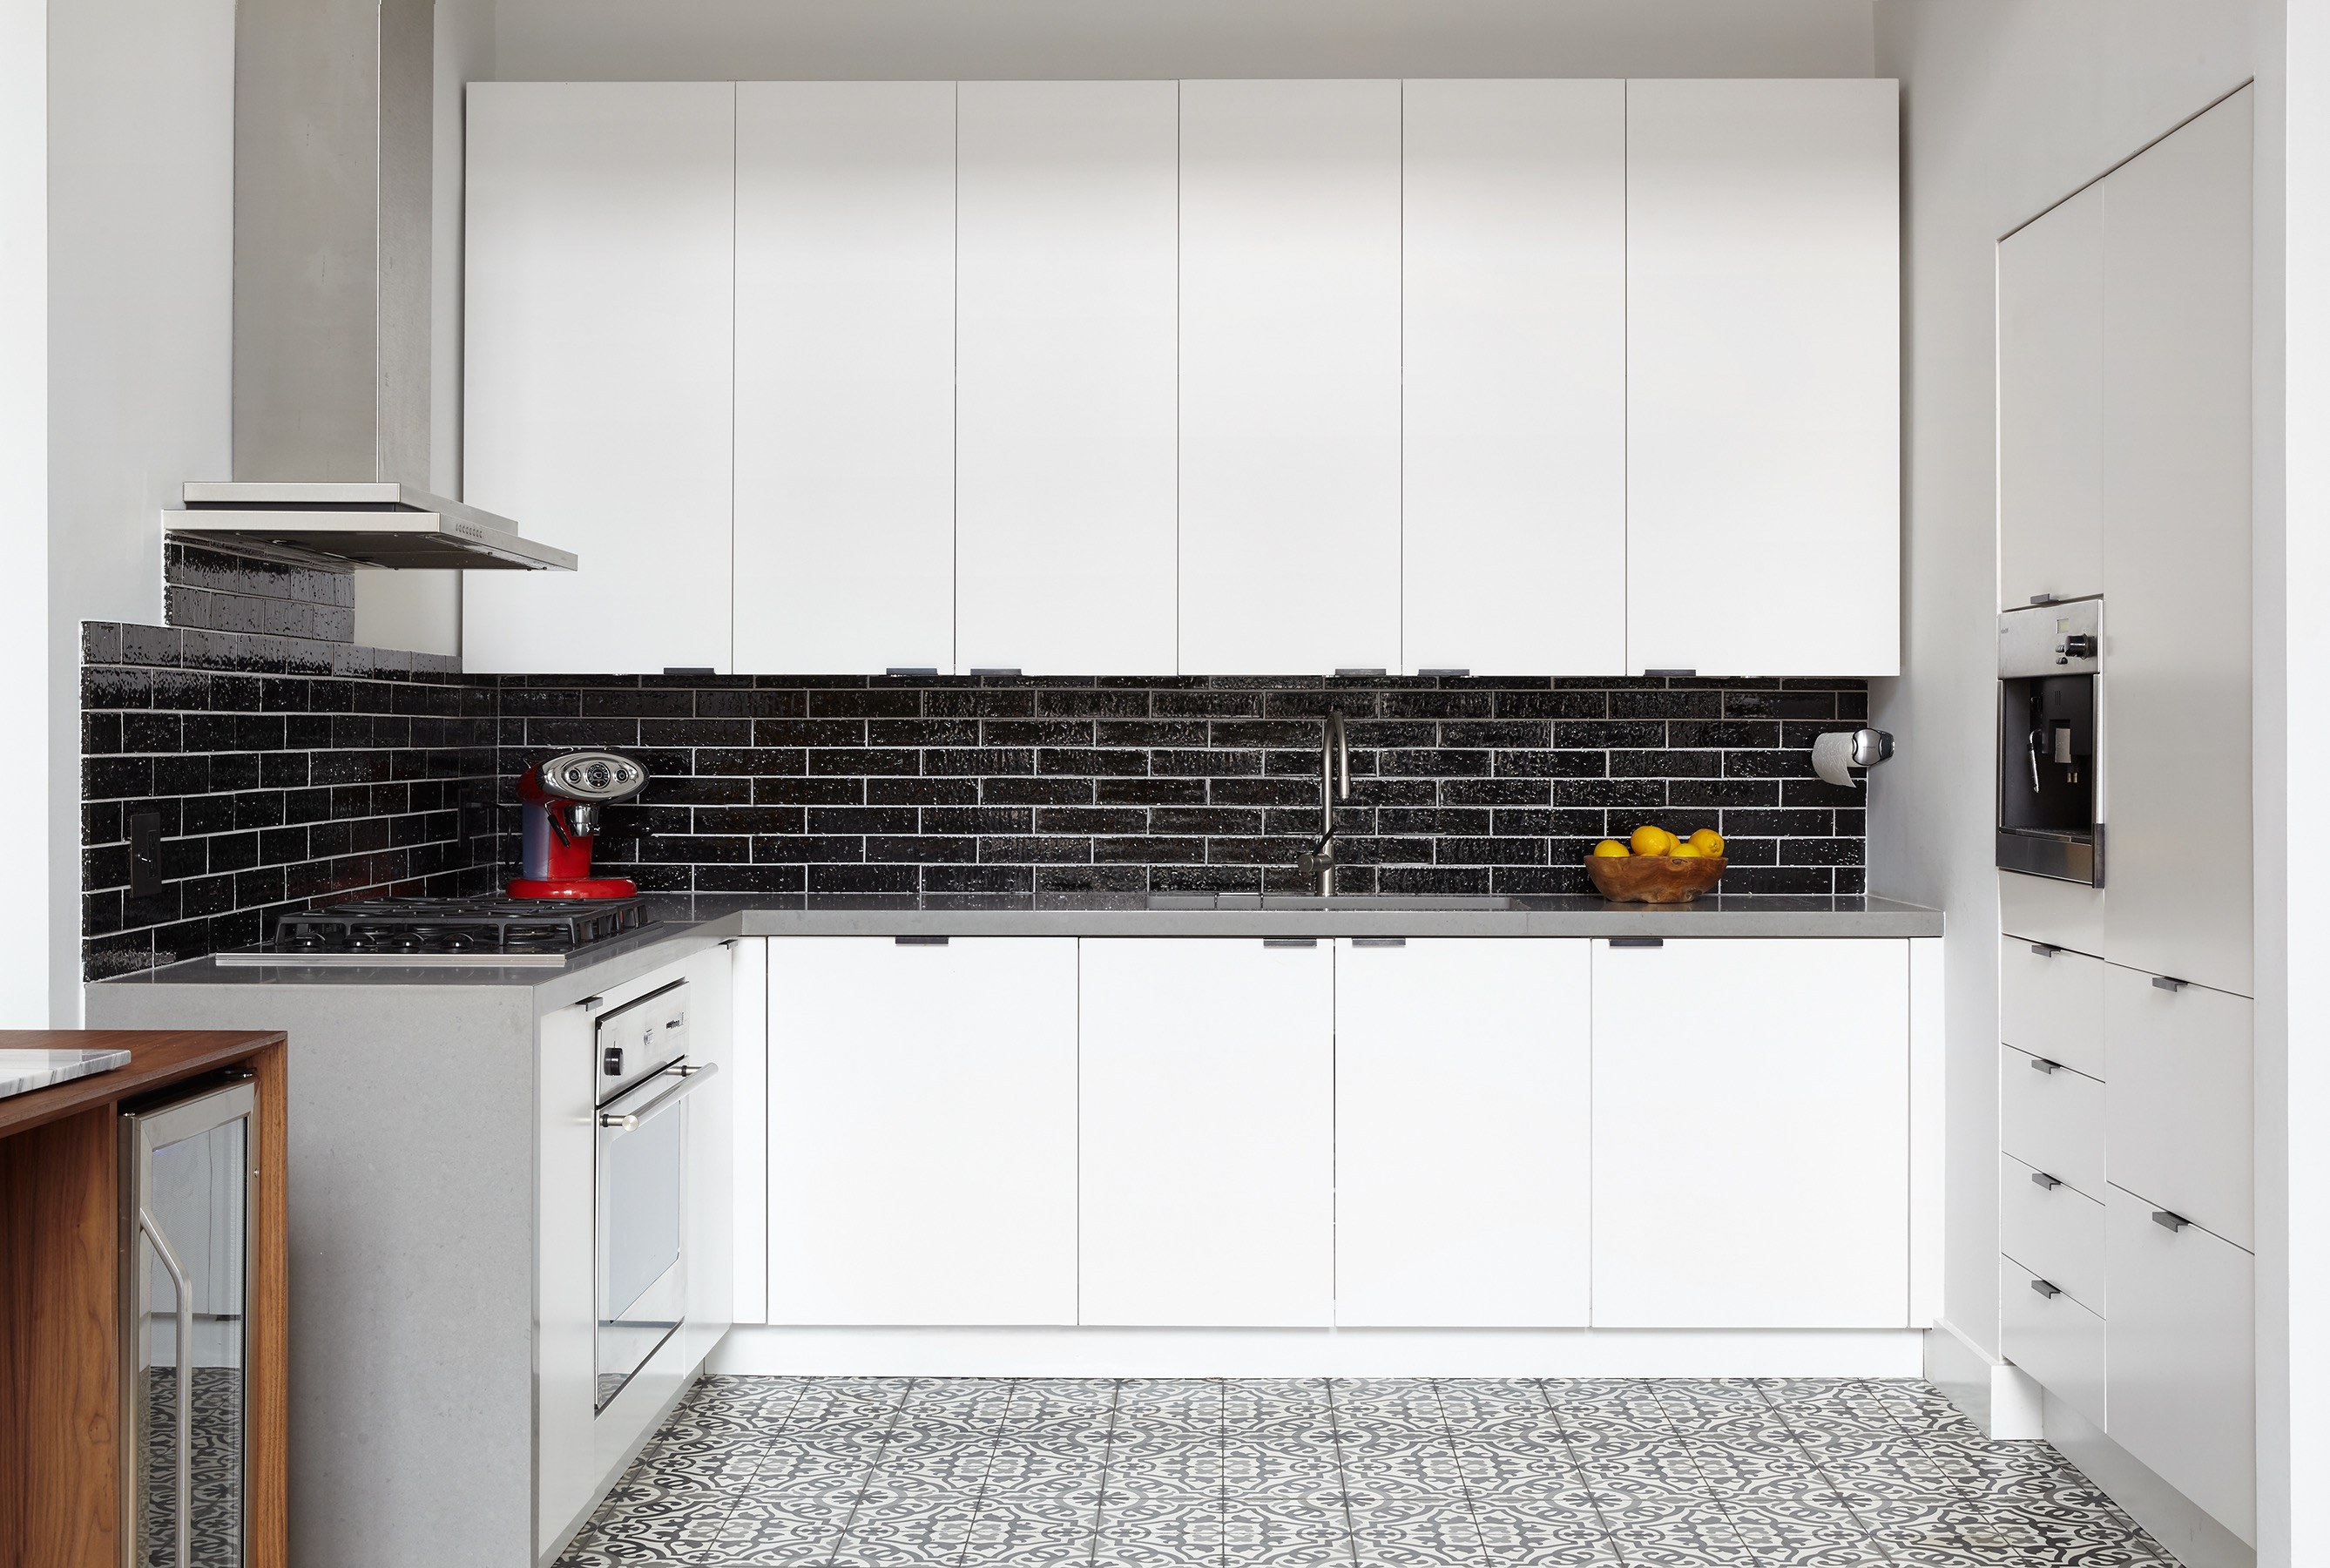 Black Tile Backsplash And Patterned Gray And White (Image 2 of 32)